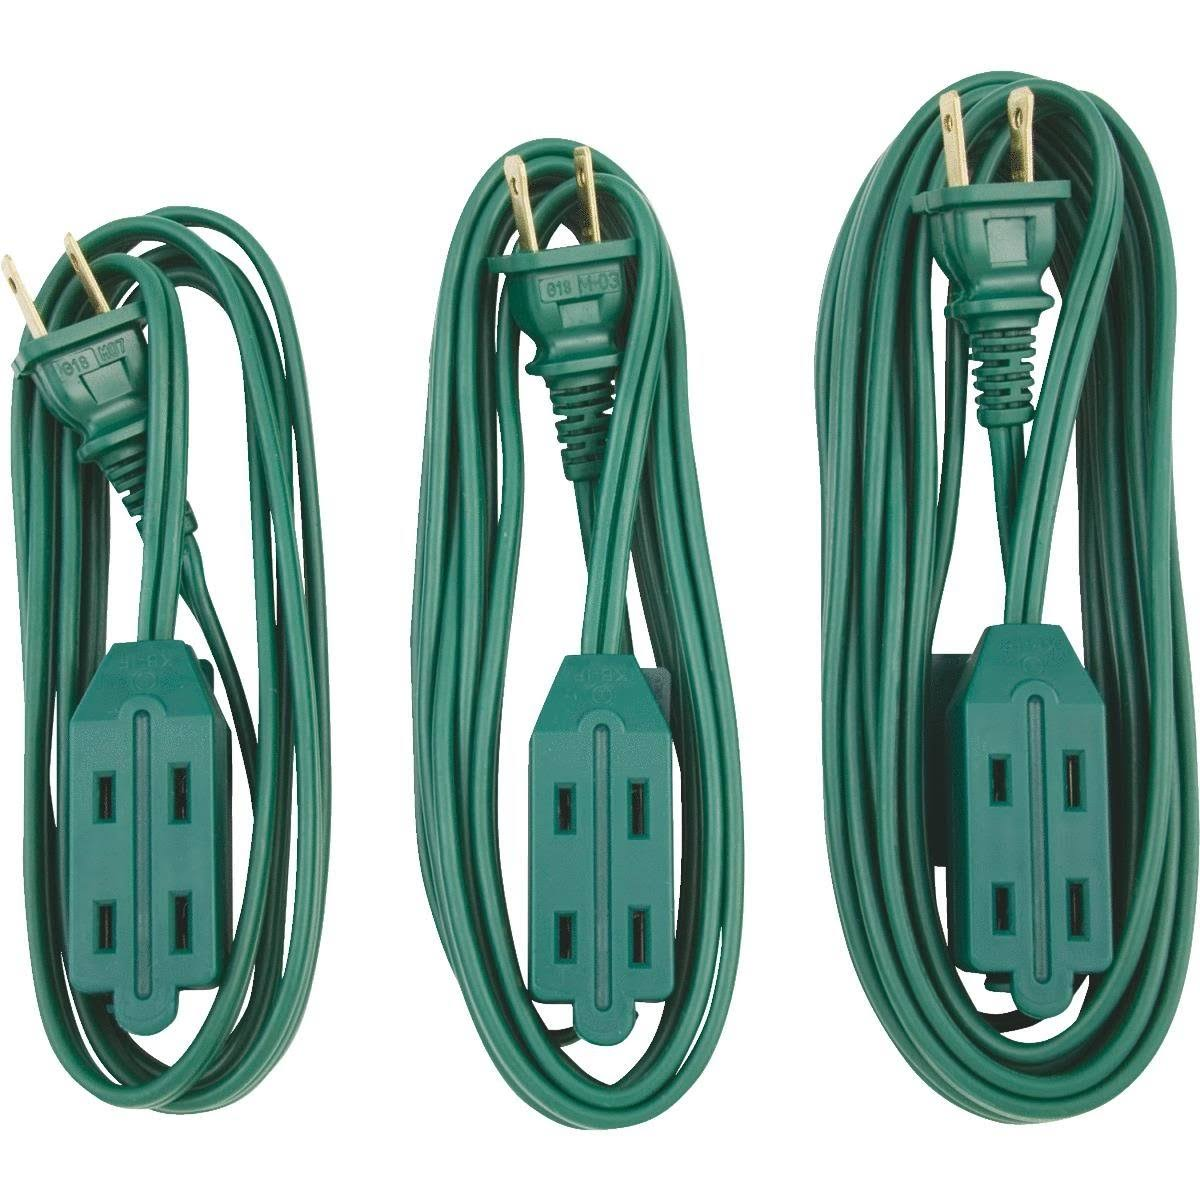 Do It Best Extension Cord Set - Green, 3pk